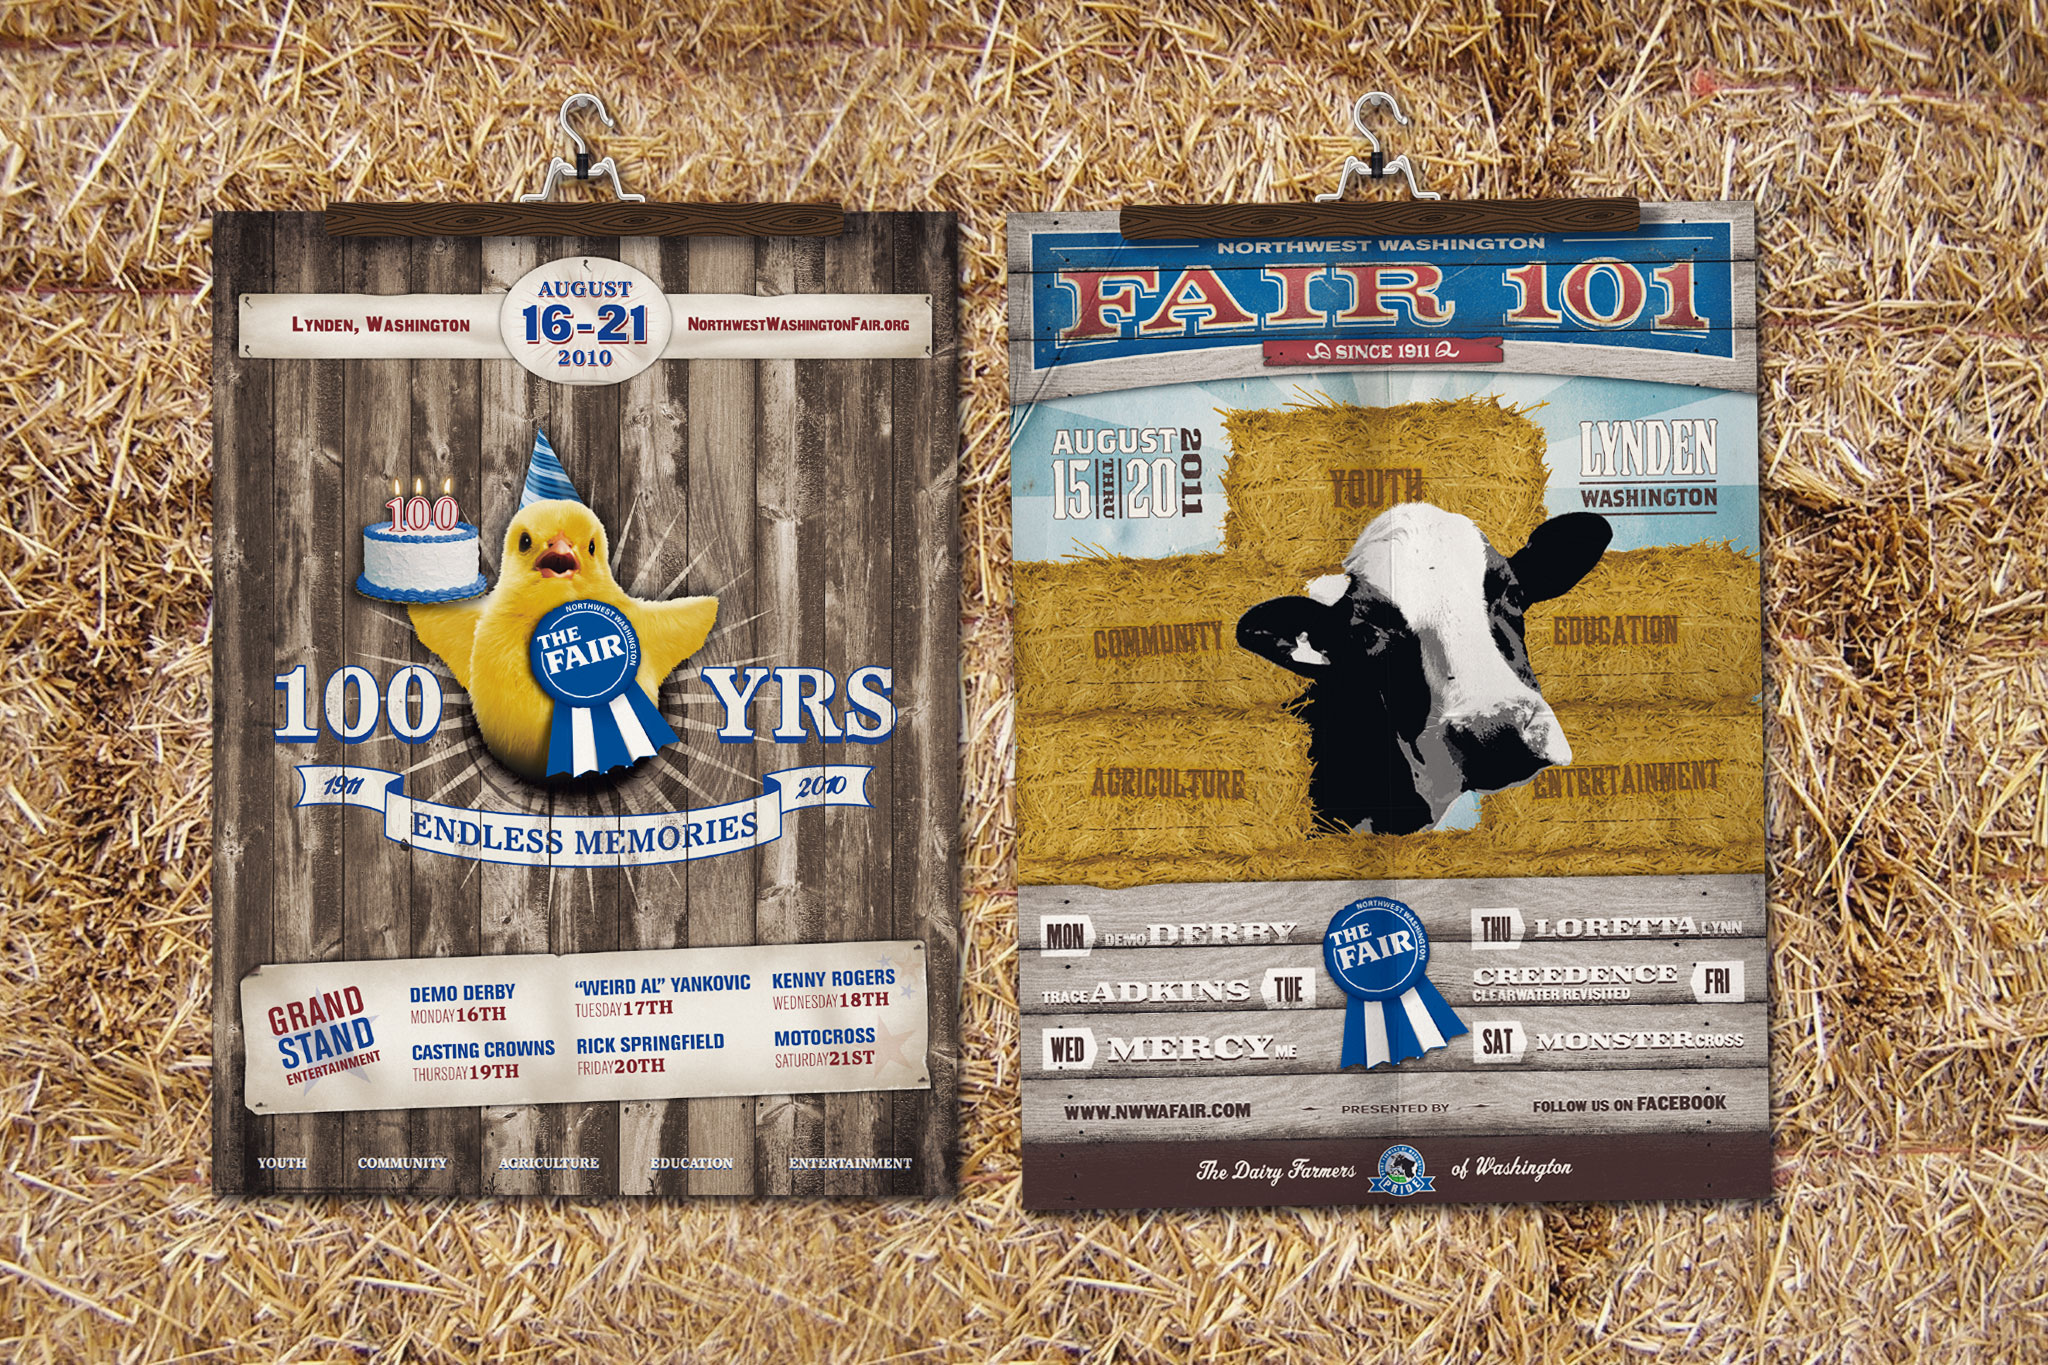 Northwest Washington Fair - Posters